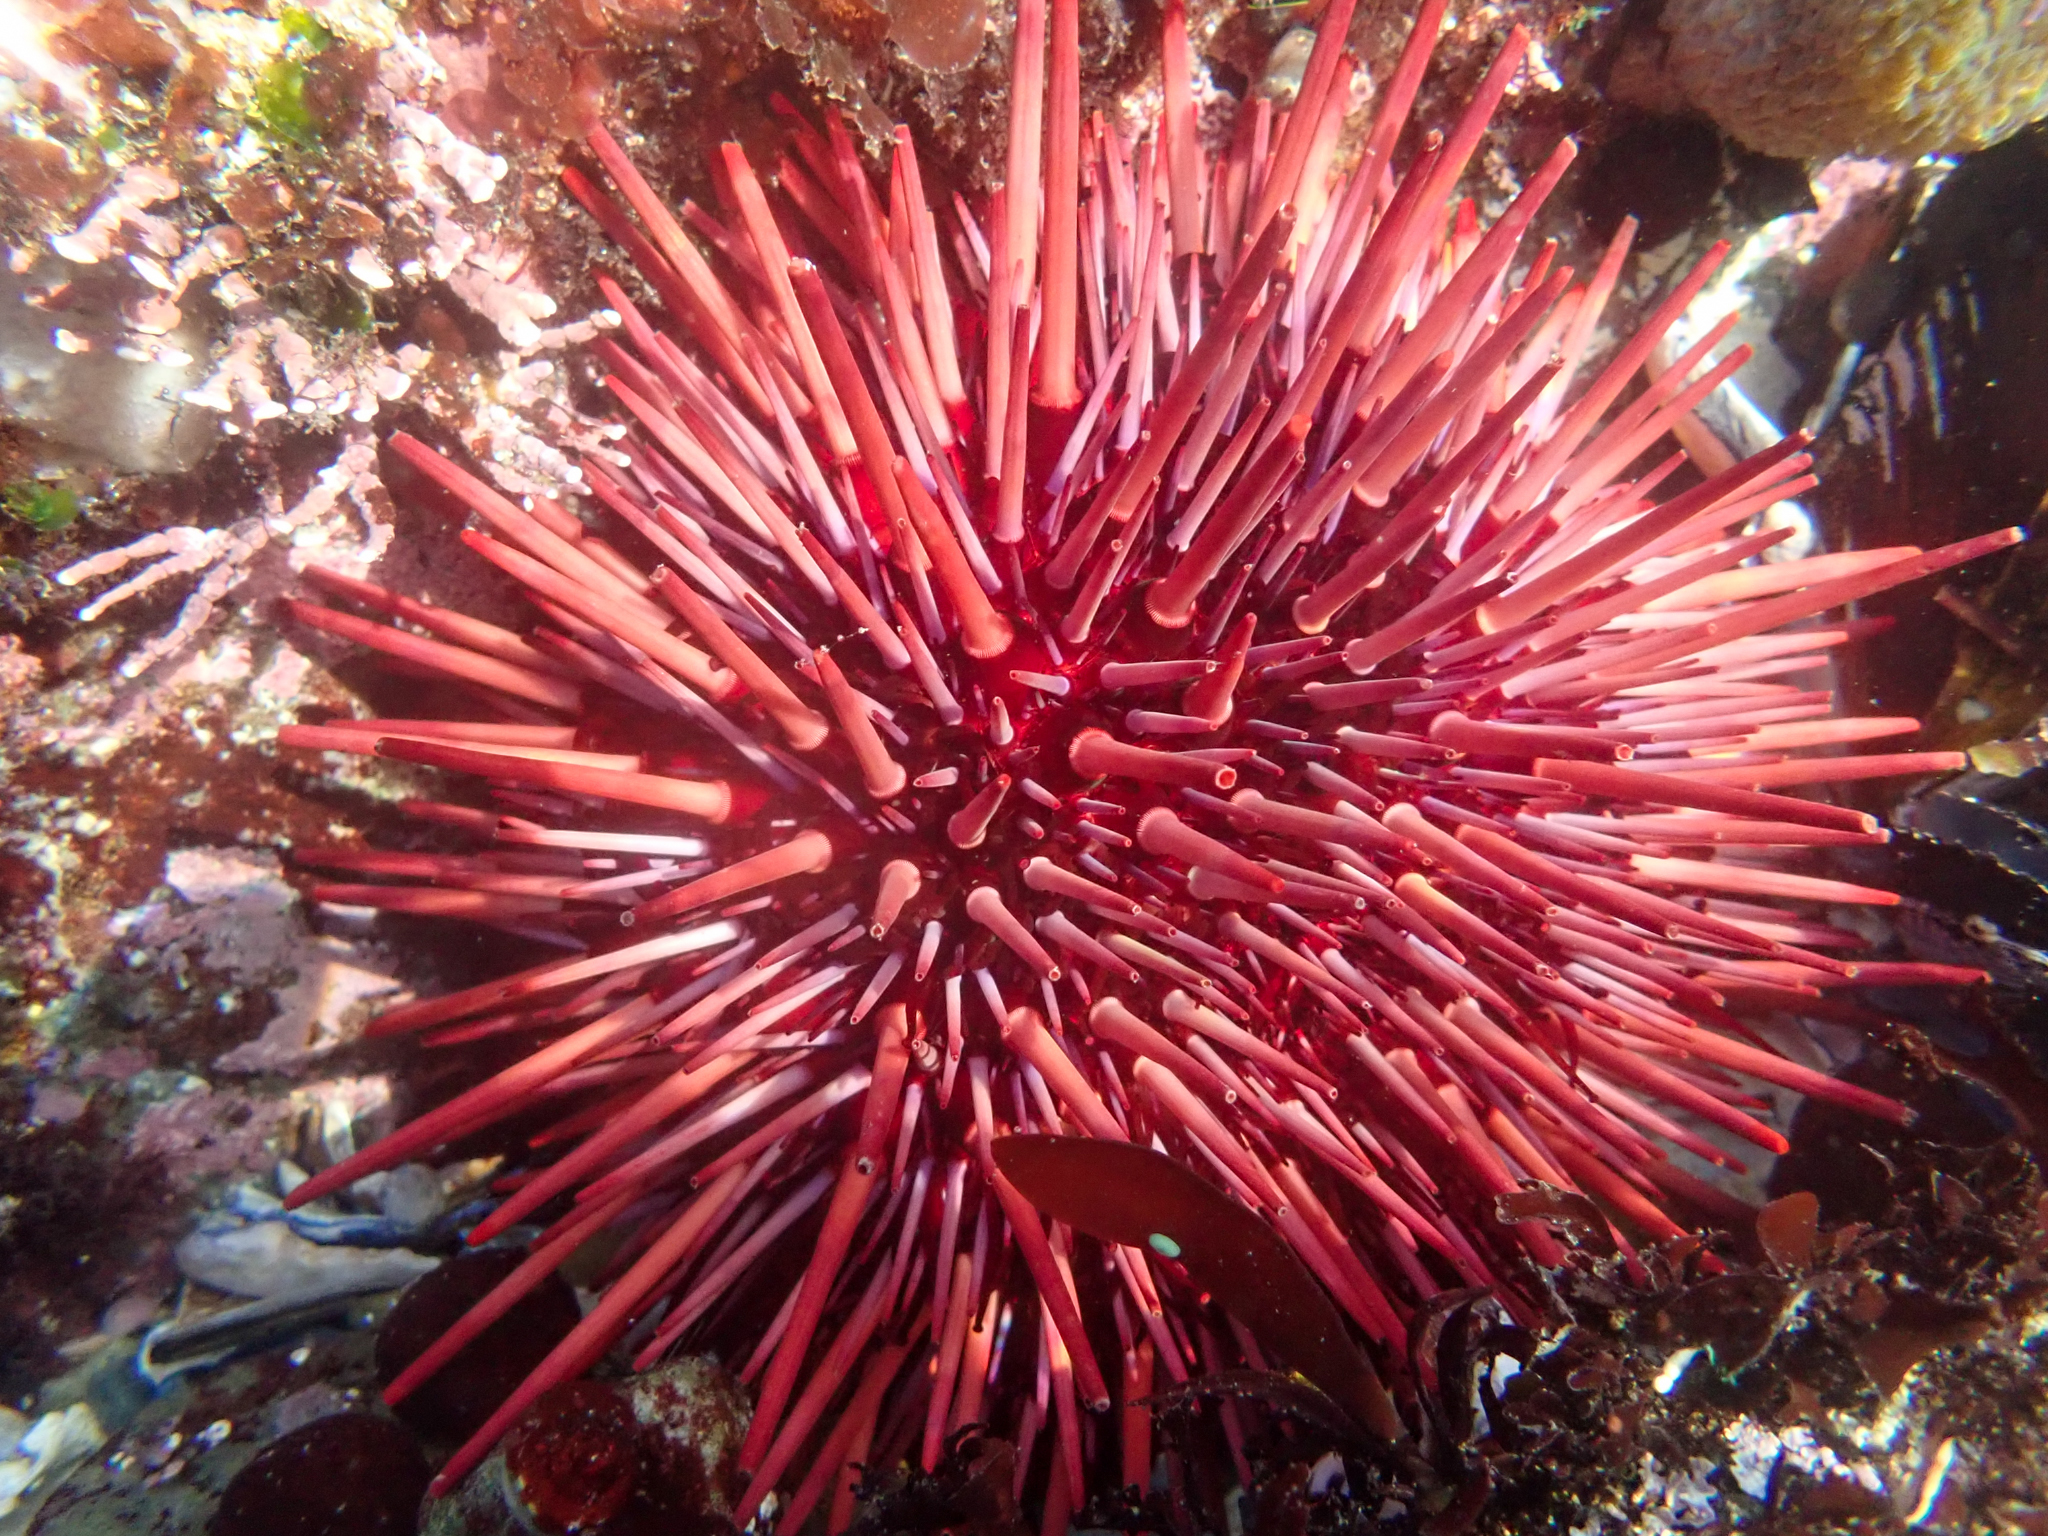 red sea urchin amongst substrate